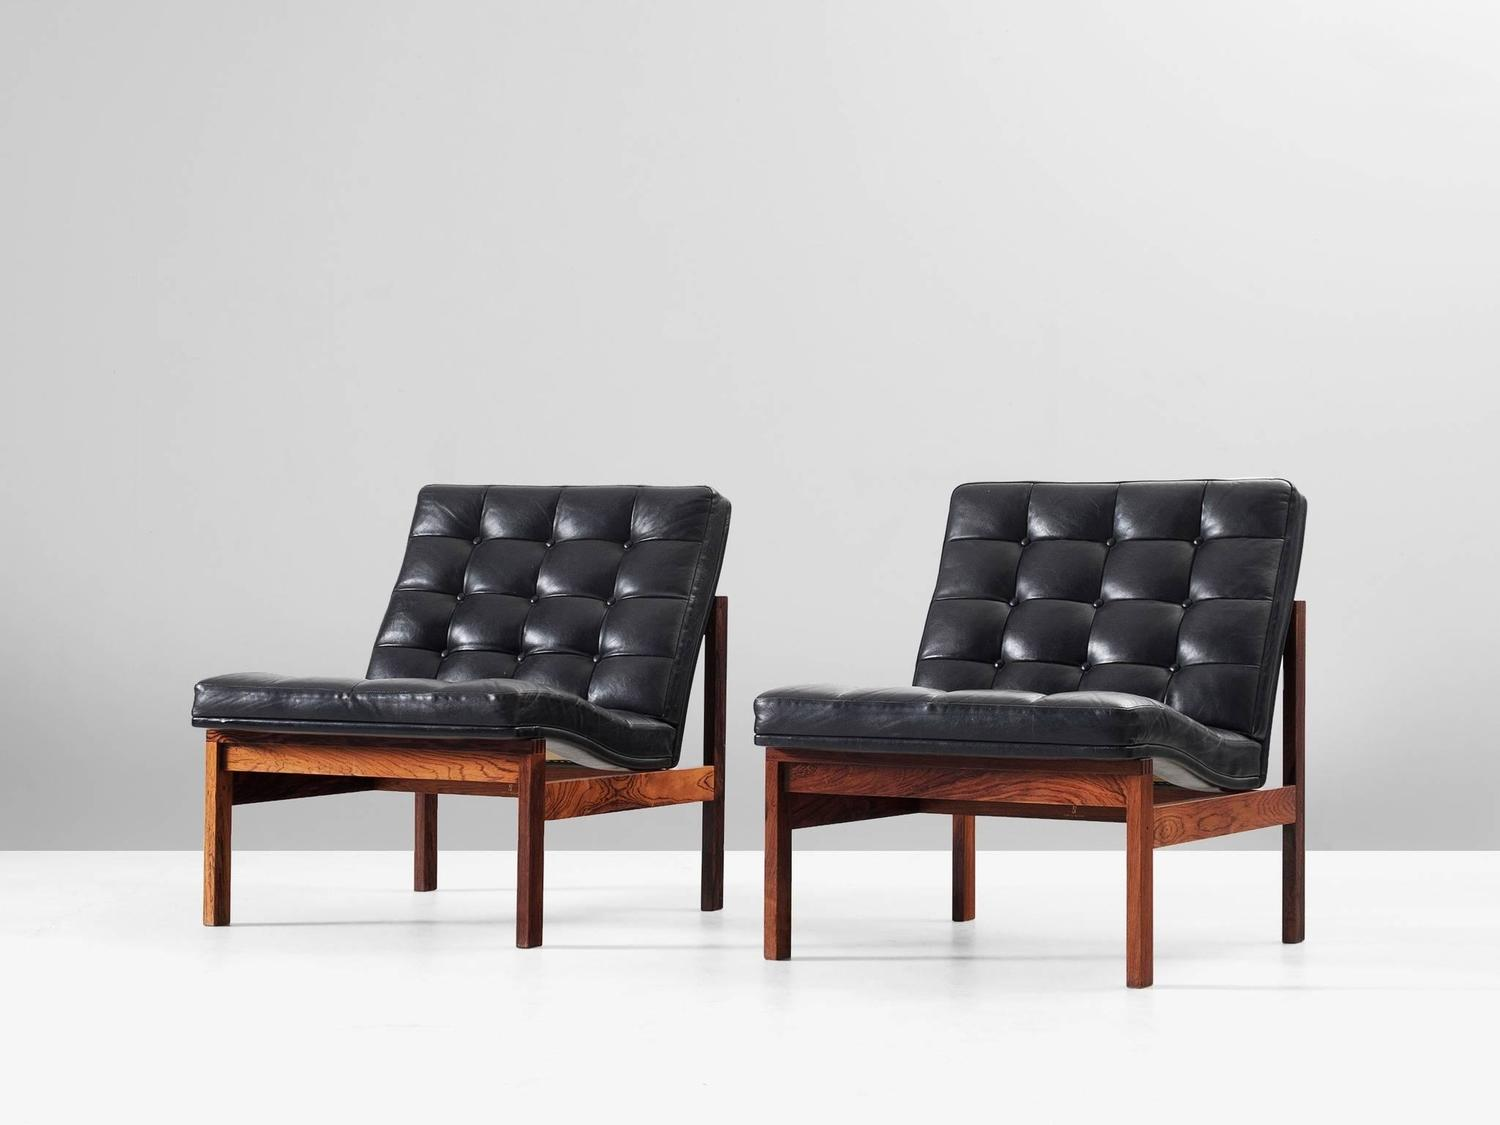 pair of easy chairs in rosewood and leather by ole gjerl v knudsen